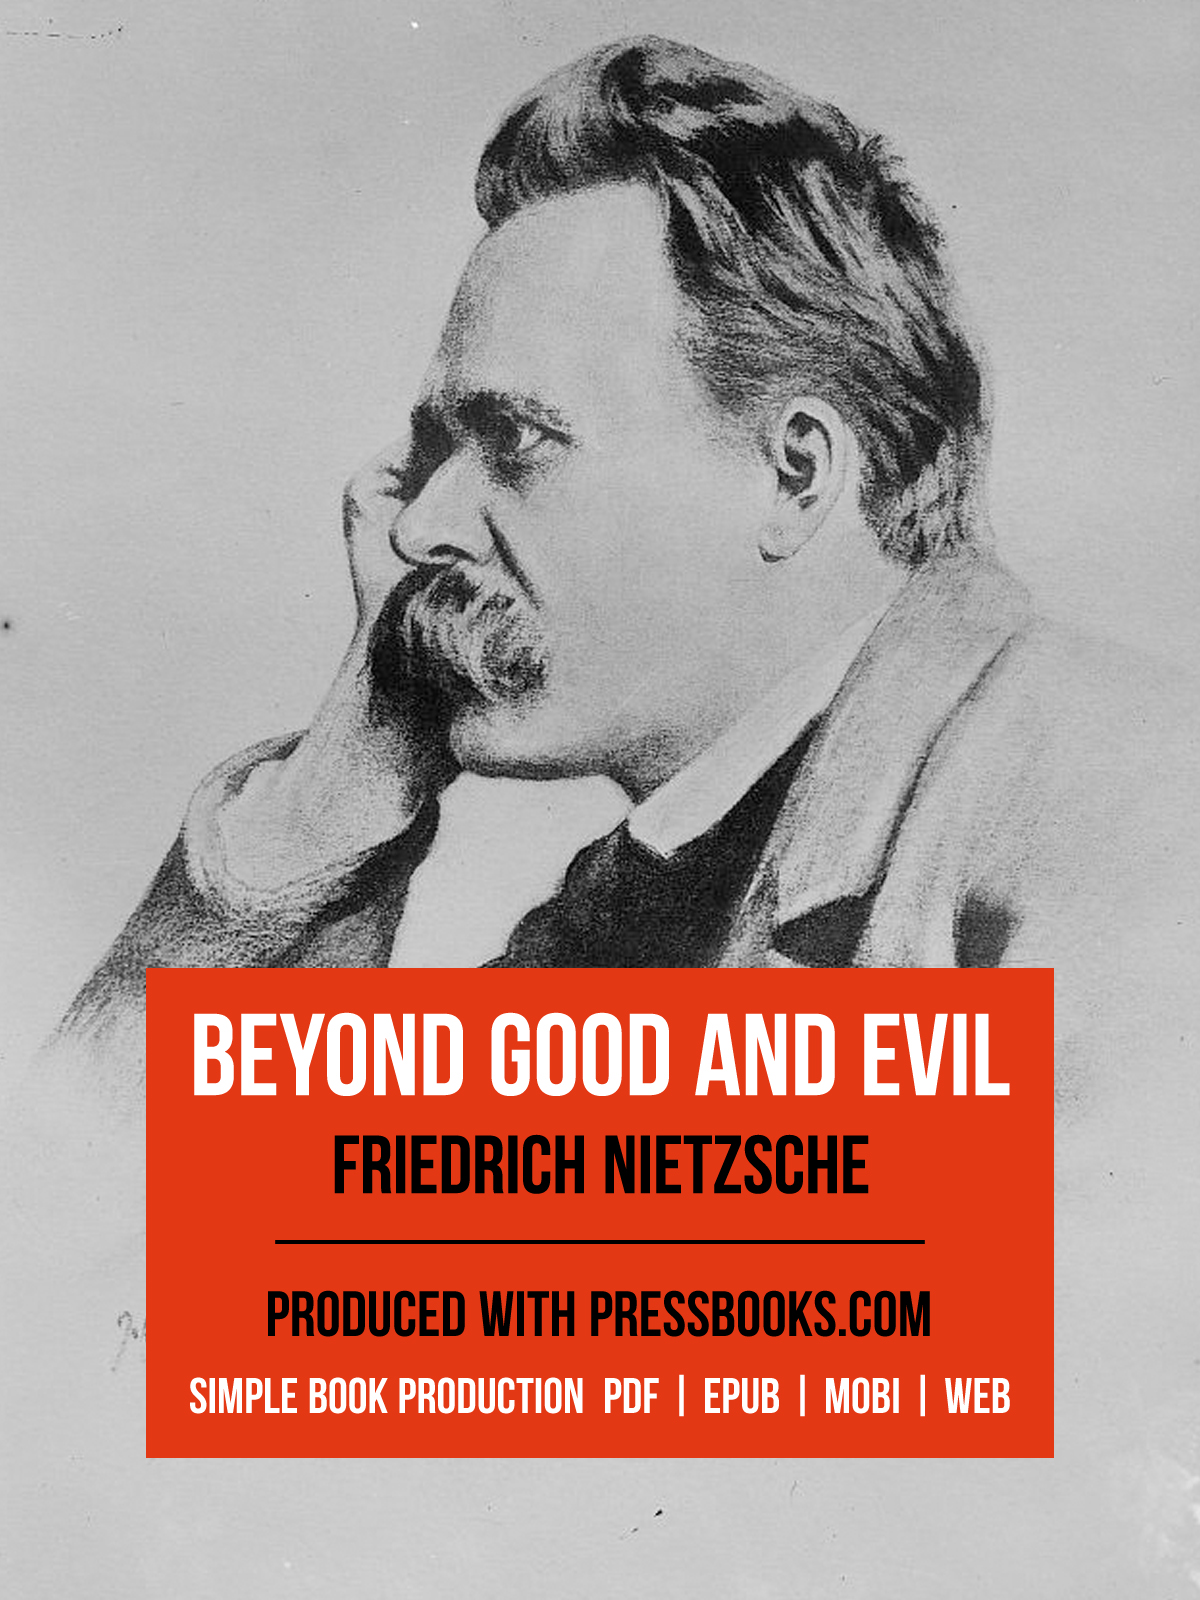 essays on nietzsche beyond good and evil Beyond good and evil: nietzsche's philosophy on good and evil - friedrich nietzsche was a philosopher in the 1800's his work has since influenced, impacted, and brought forth new questions for many philosophers to follow.